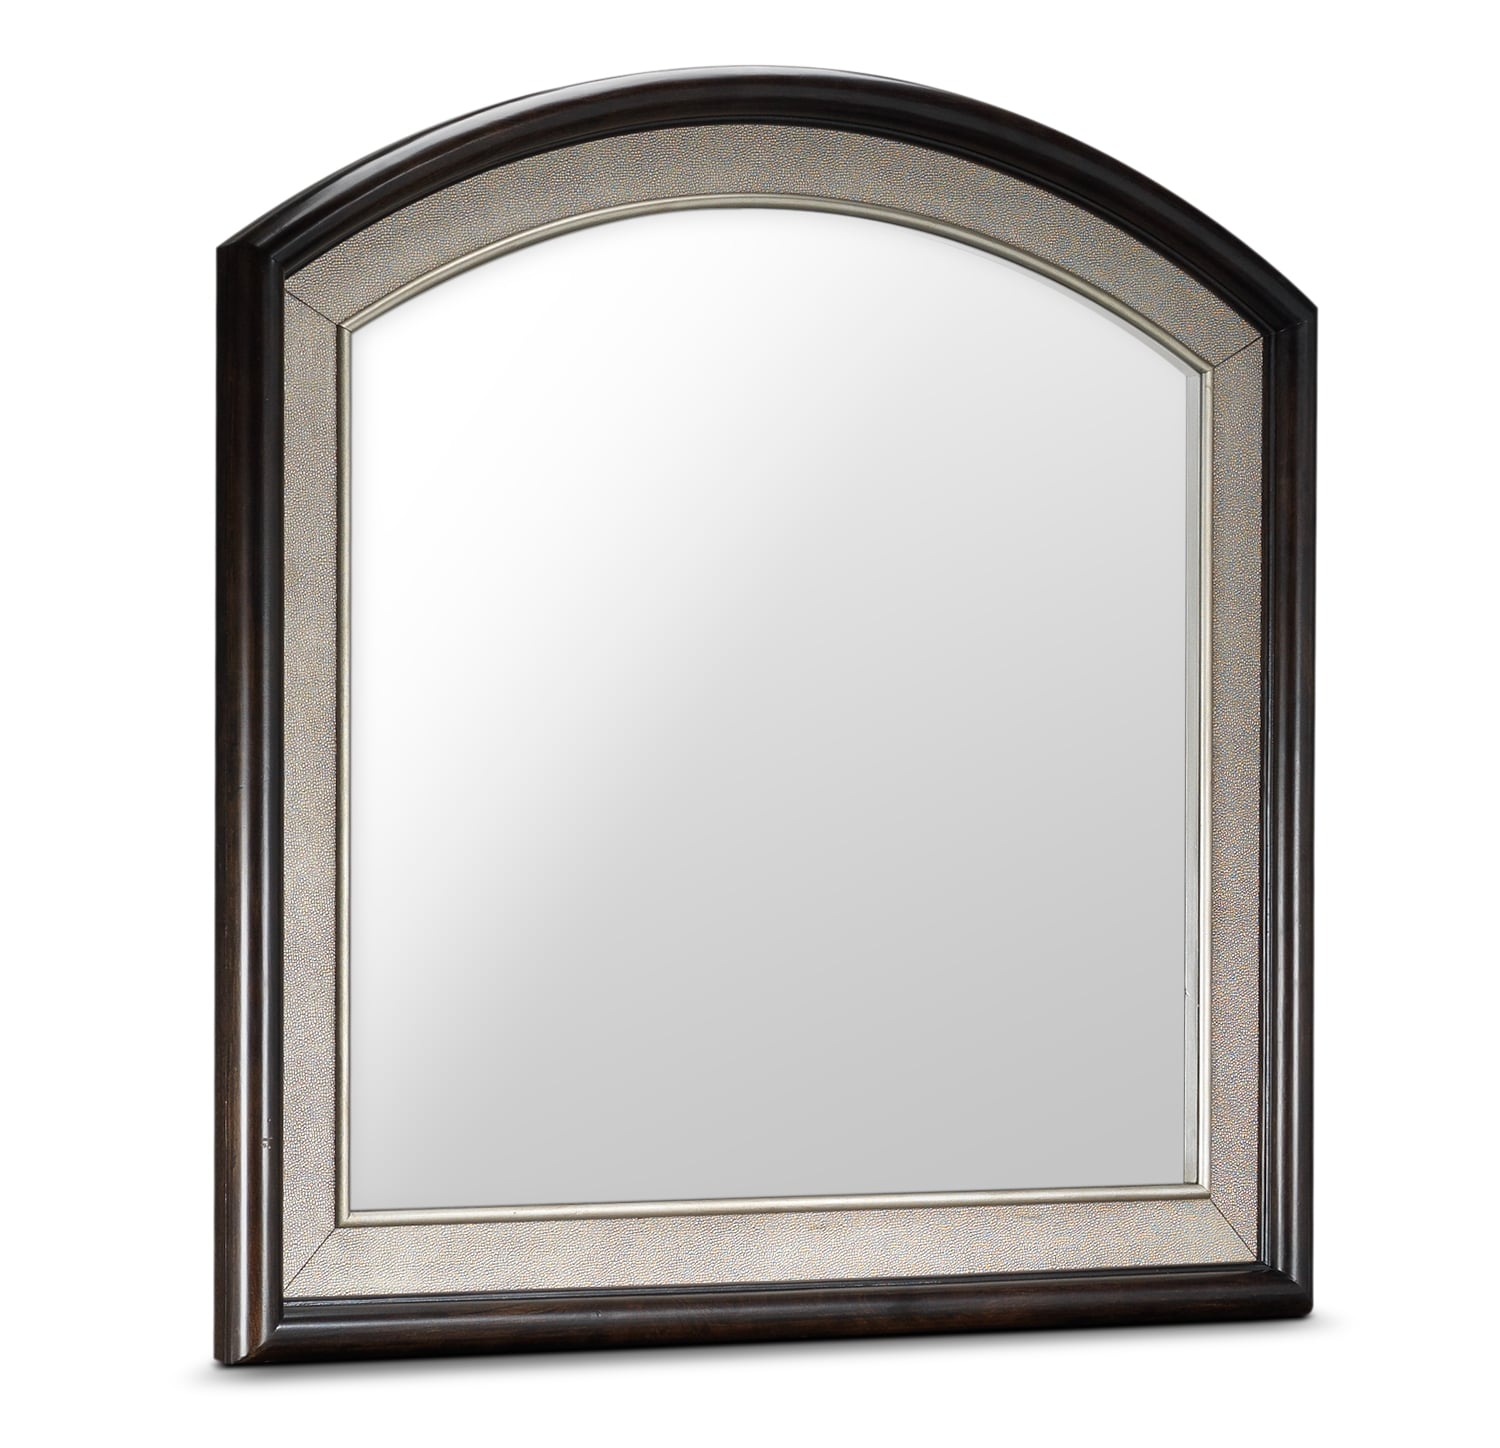 Bedroom Furniture - Glamour Mirror - Coffee Bean